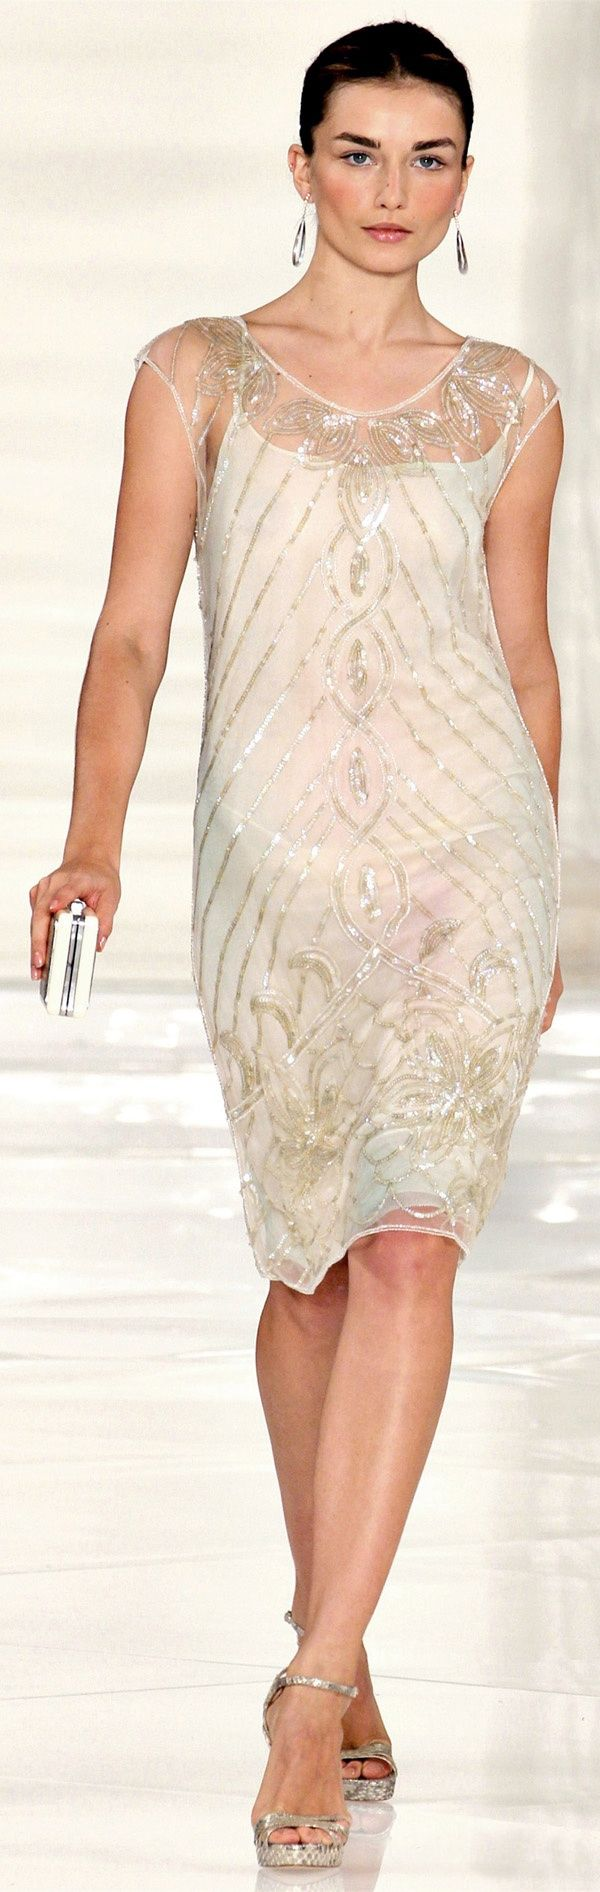 Ralph Lauren Spring Summer 2012 Haute Couture - 20's style beautiful dress and makeup